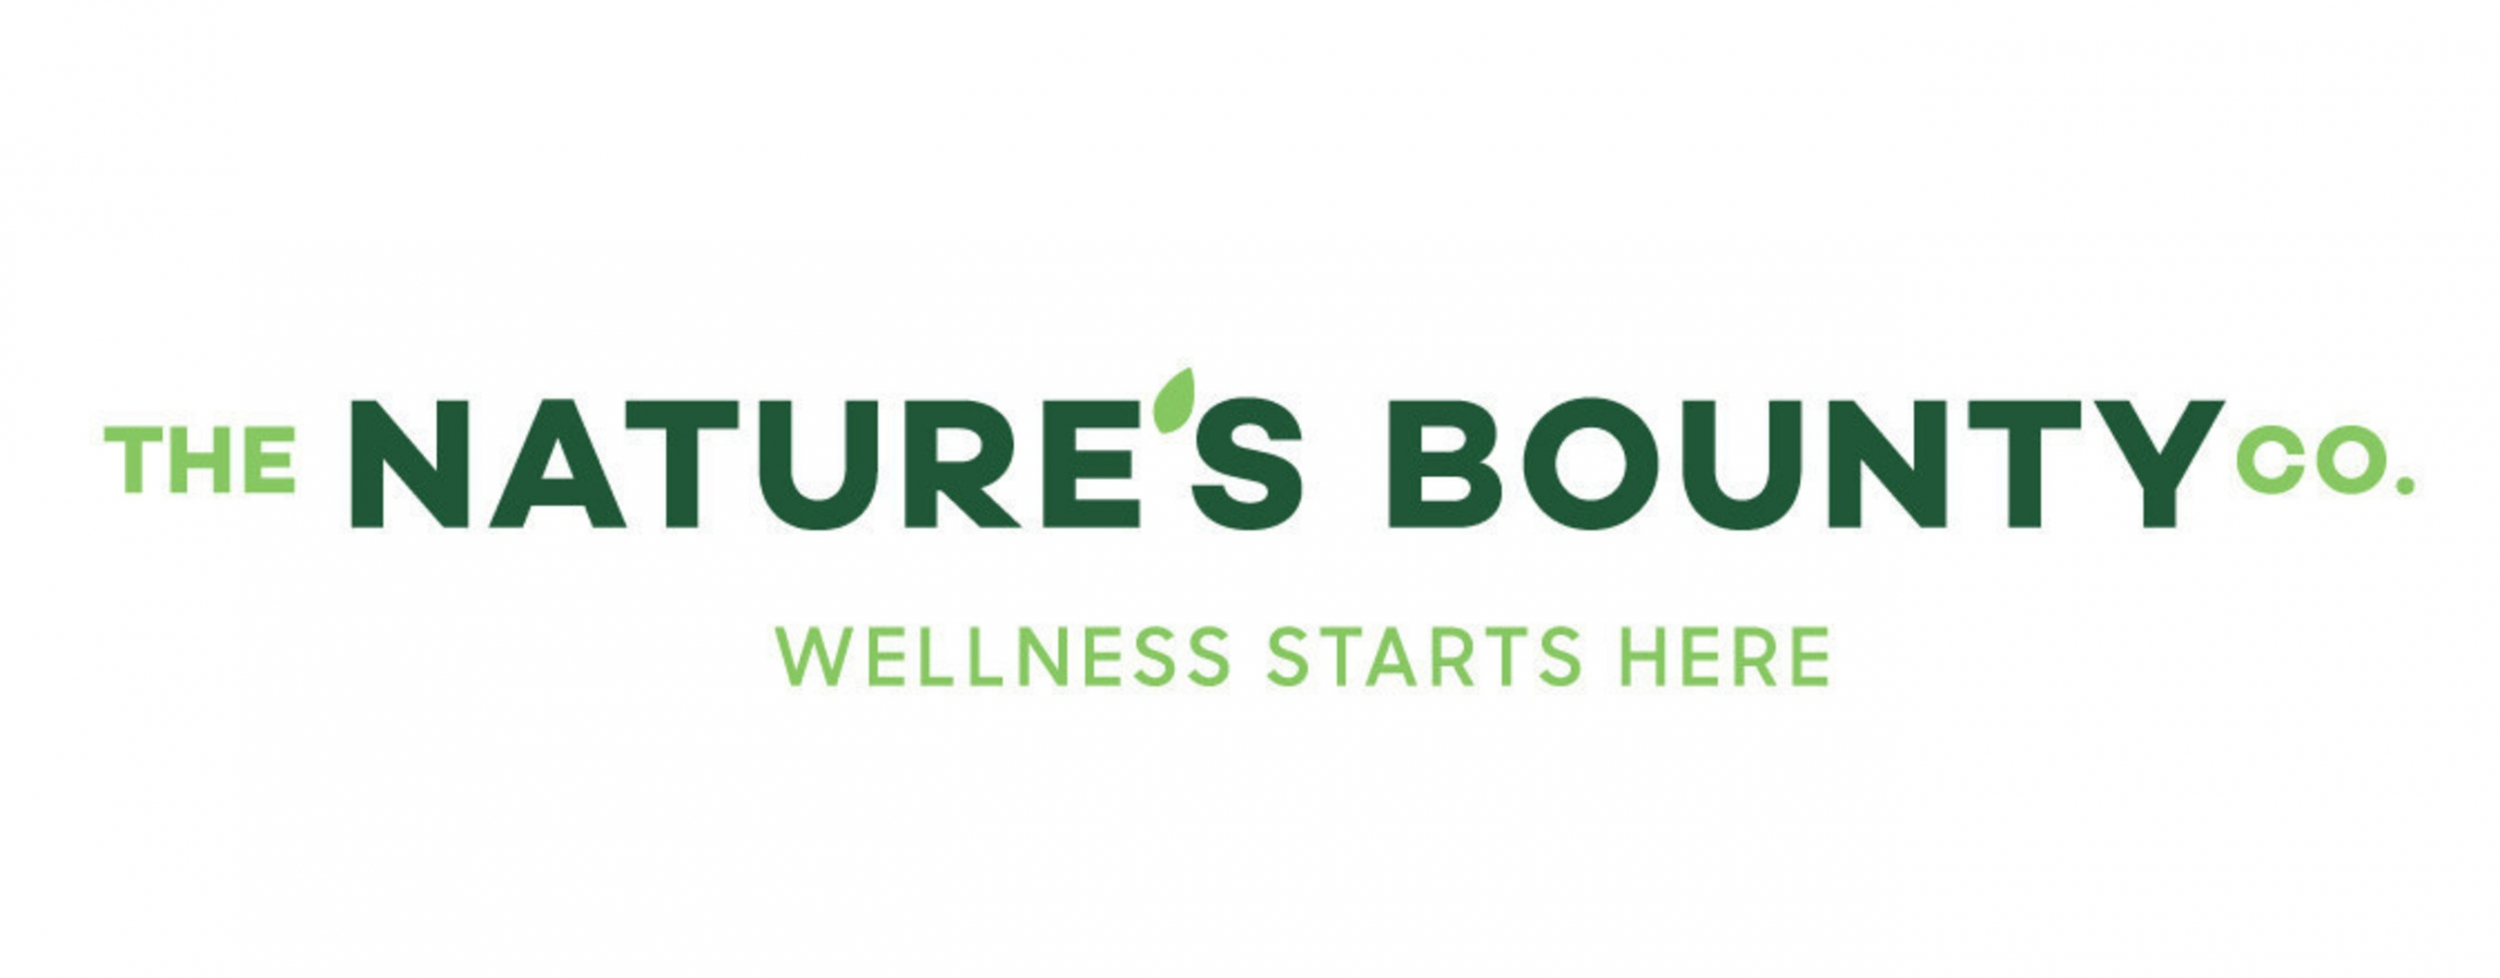 The Nature's Bounty Co. Wellness Starts Here.